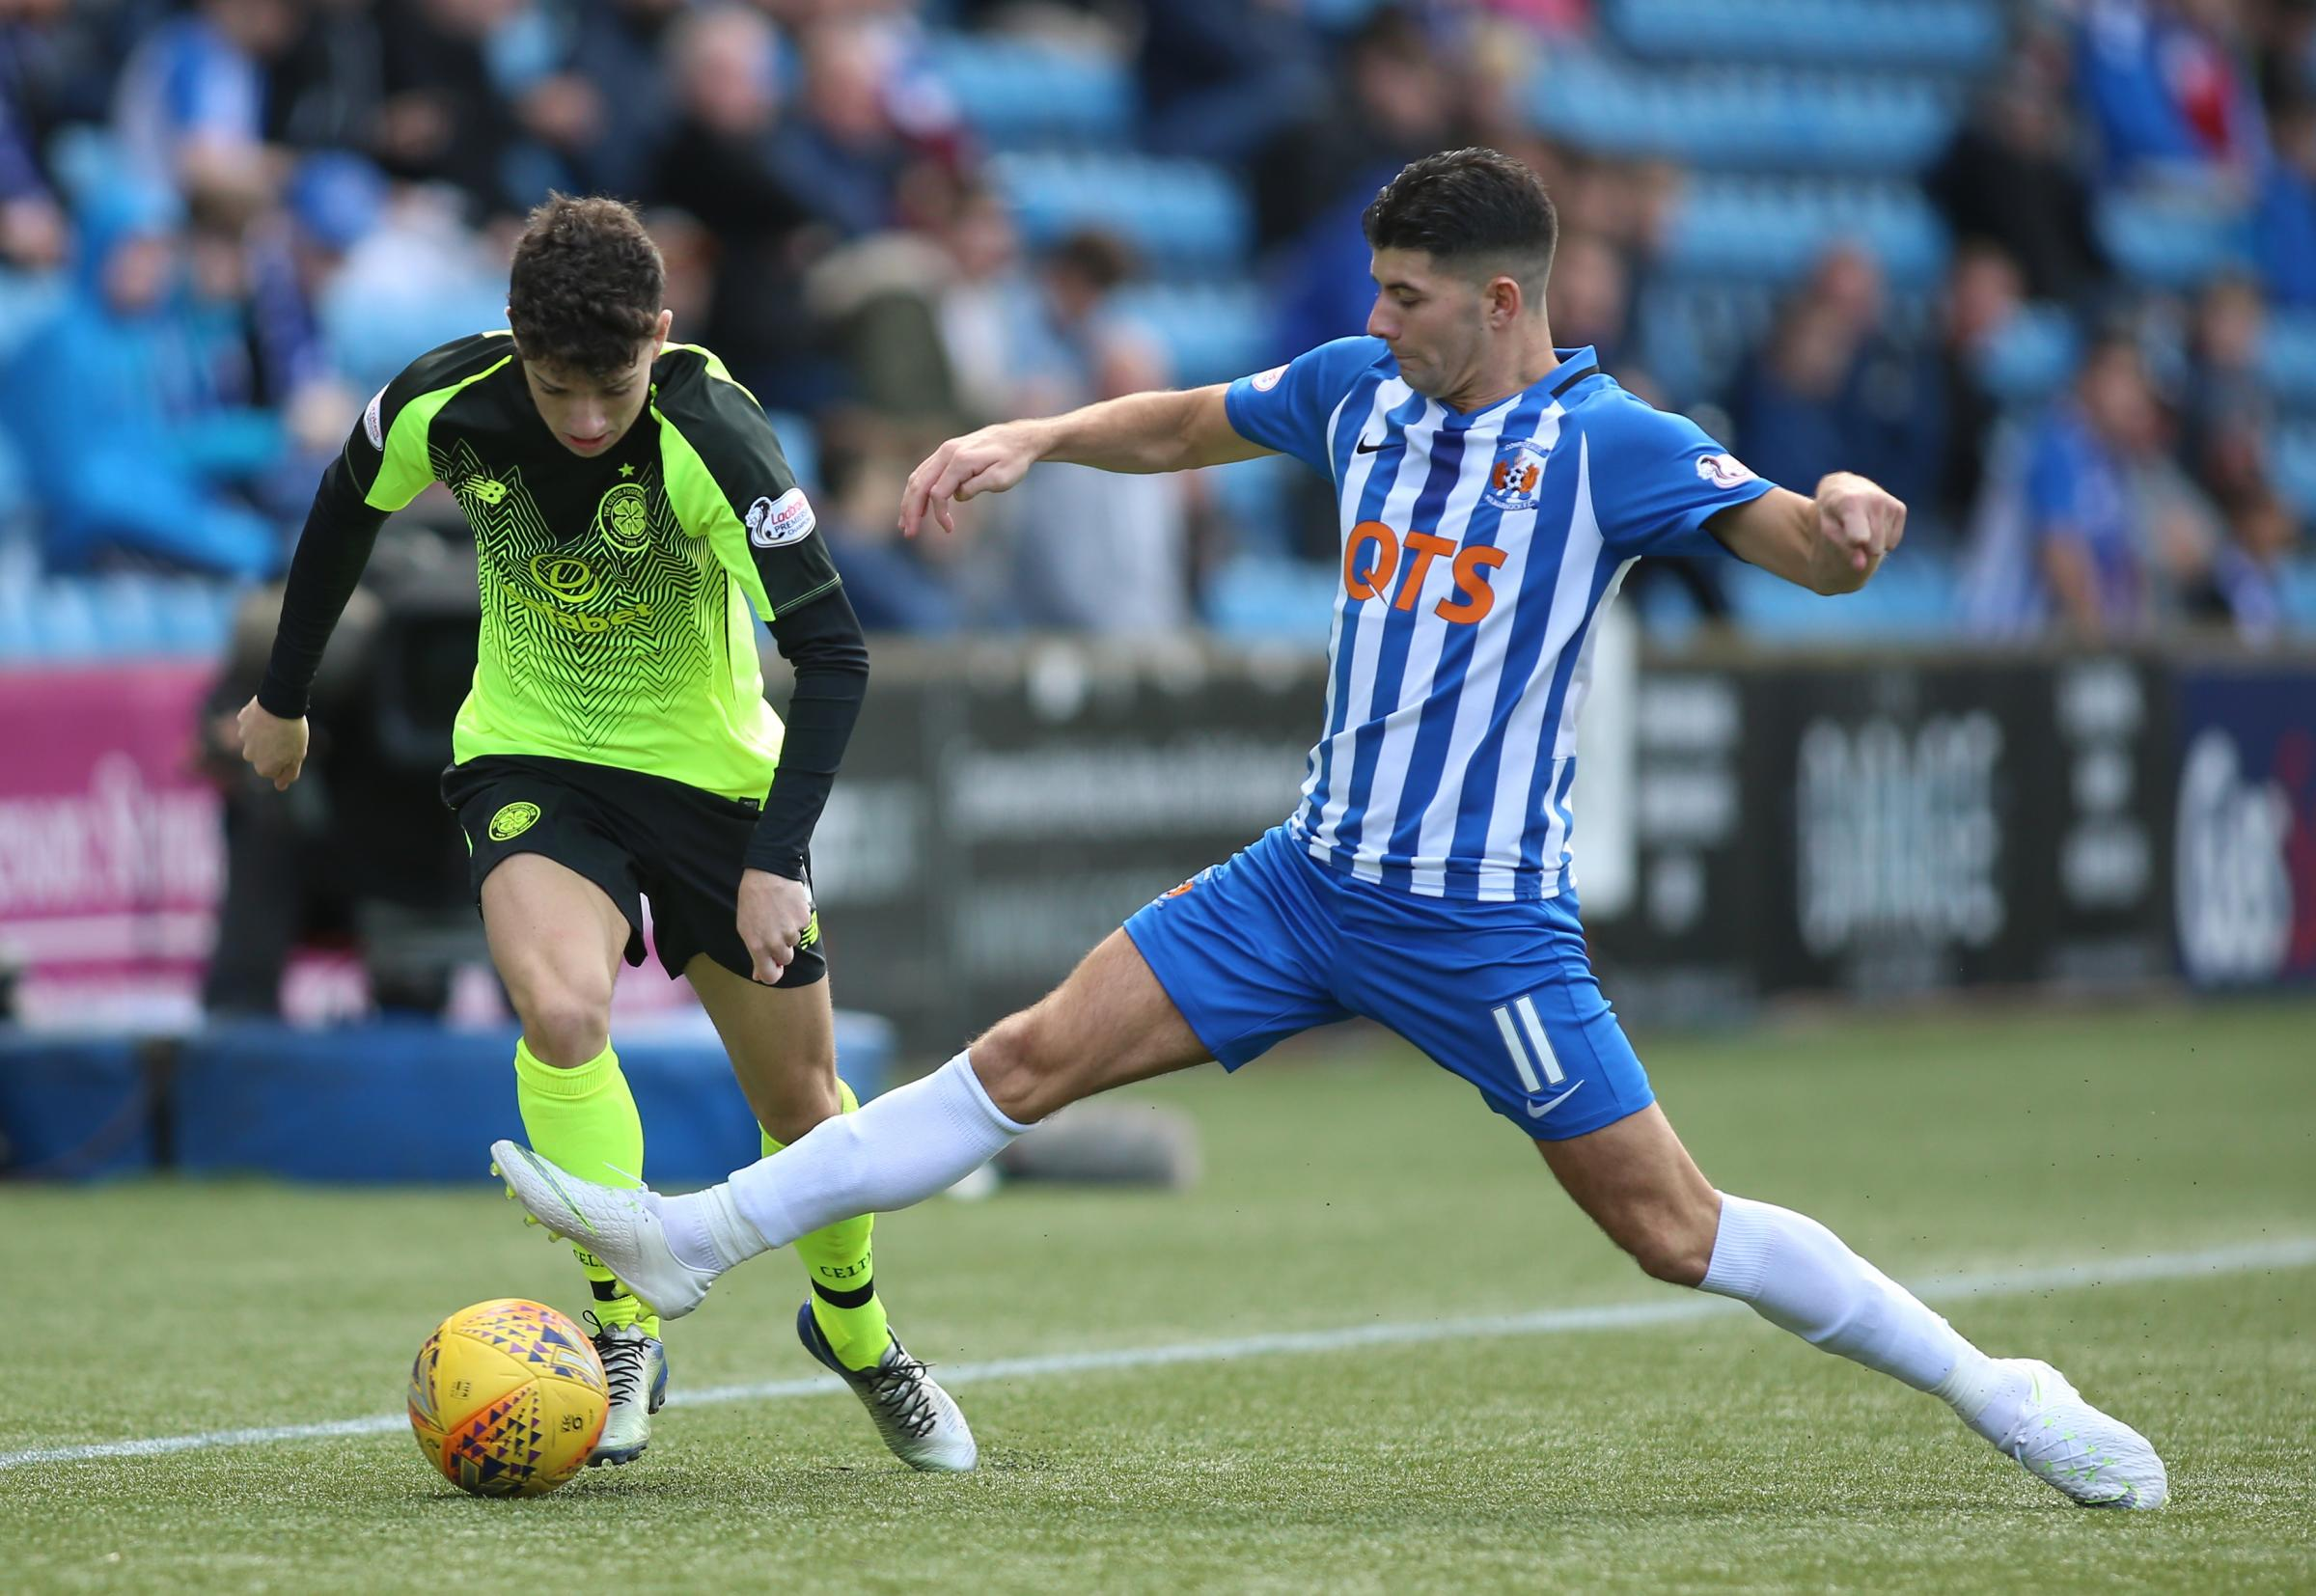 Kilmarnock winger Jordan Jones has been criticised by some of the club's fans for expressing his delight at signing a pre-contract agreement with Rangers PHOTO: GETTY